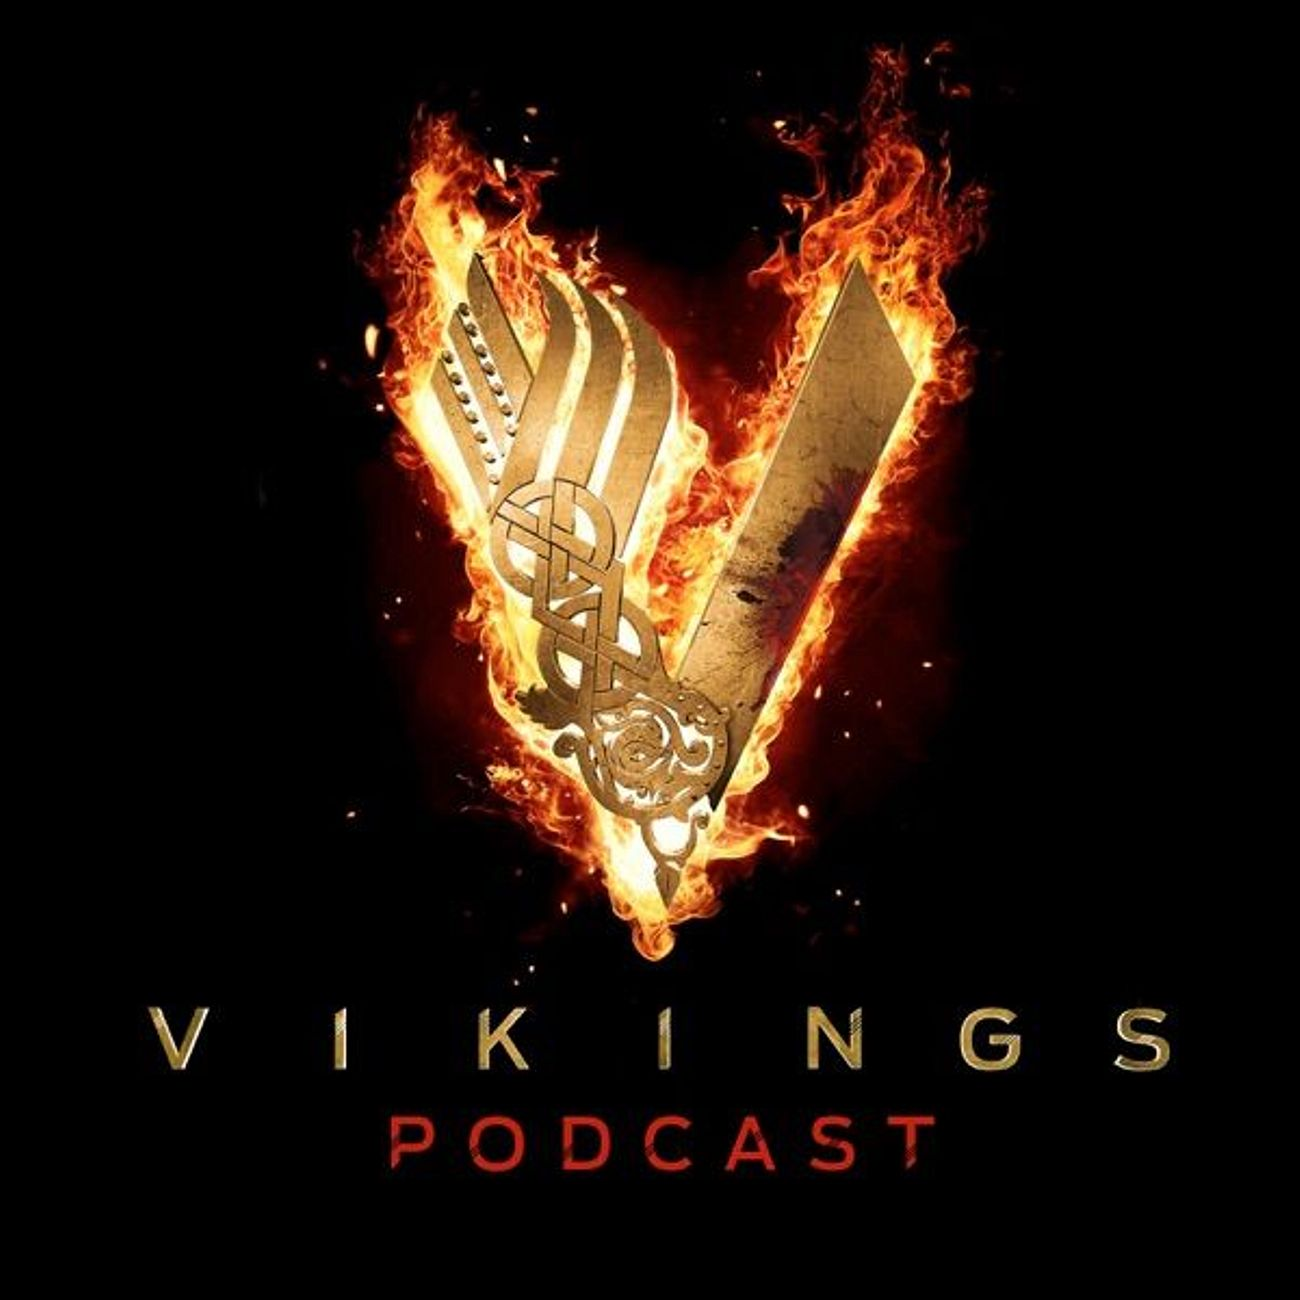 Vikings: The Official Podcast